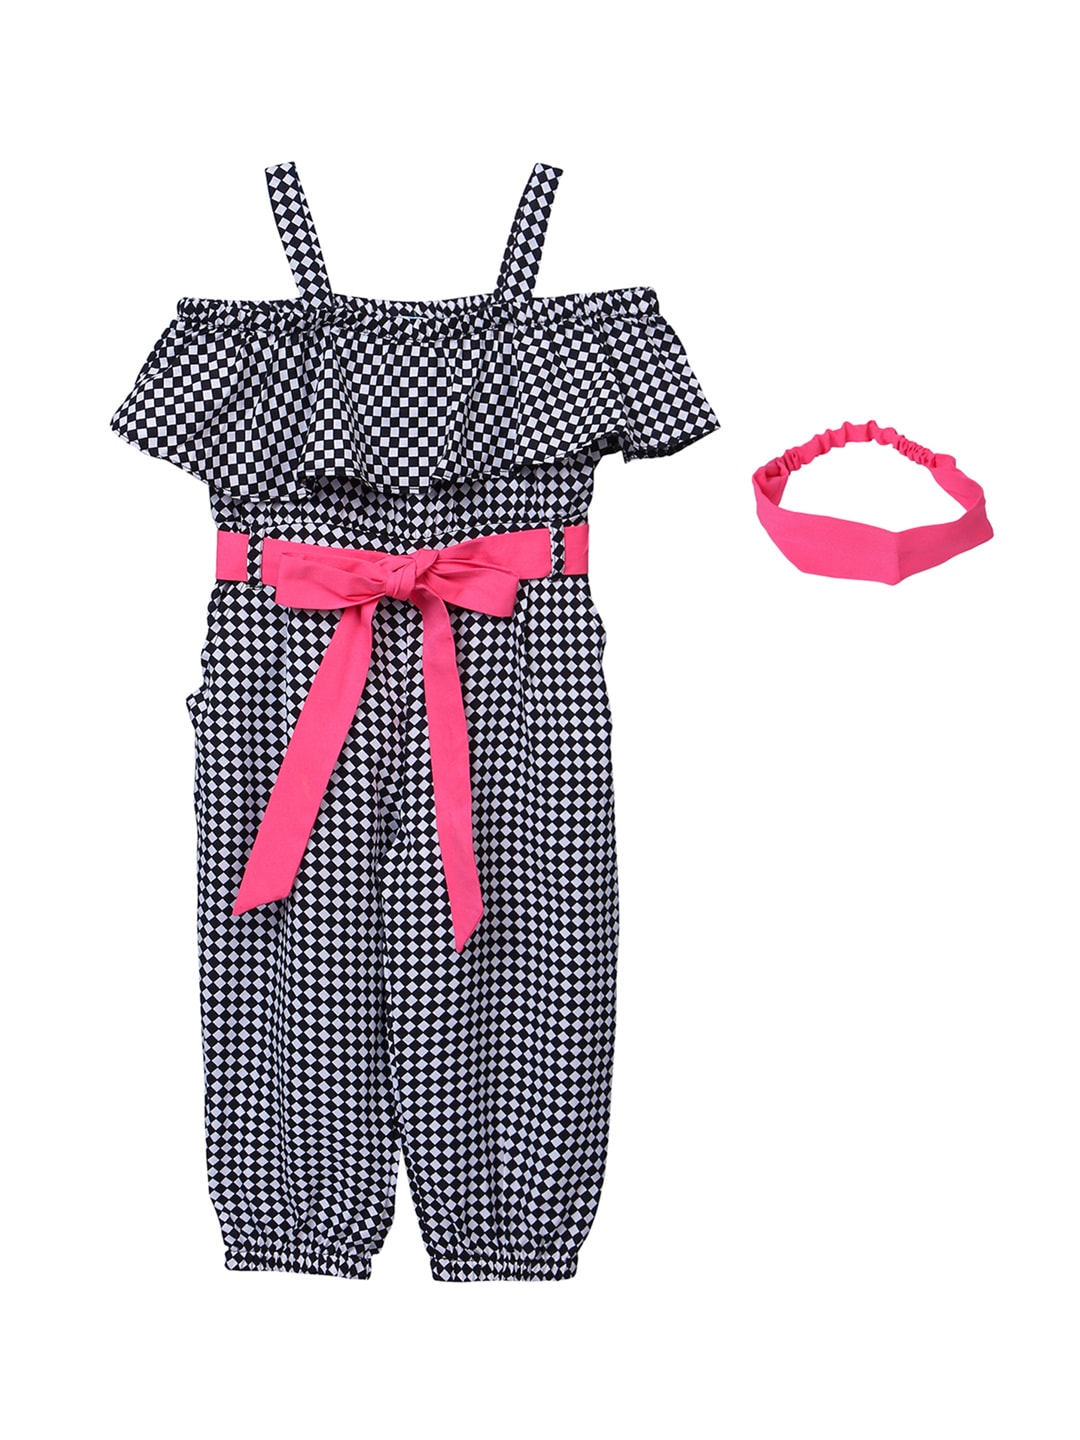 4a7dd13957f4 Jumpsuit For Girls- Buy Girls Jumpsuit online in India